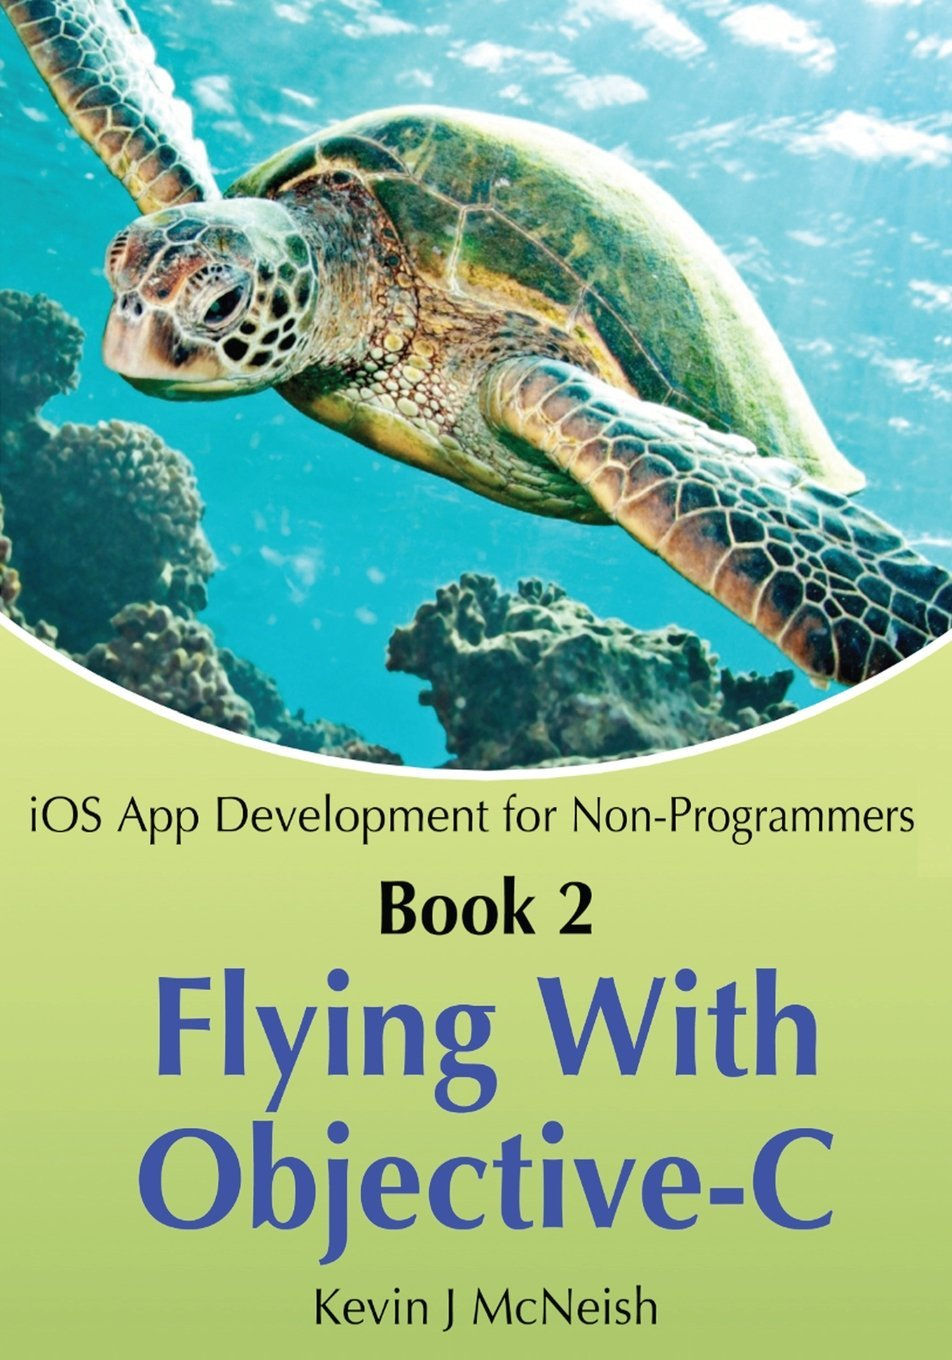 Book 2: Flying With Objective-C - iOS App Developm...